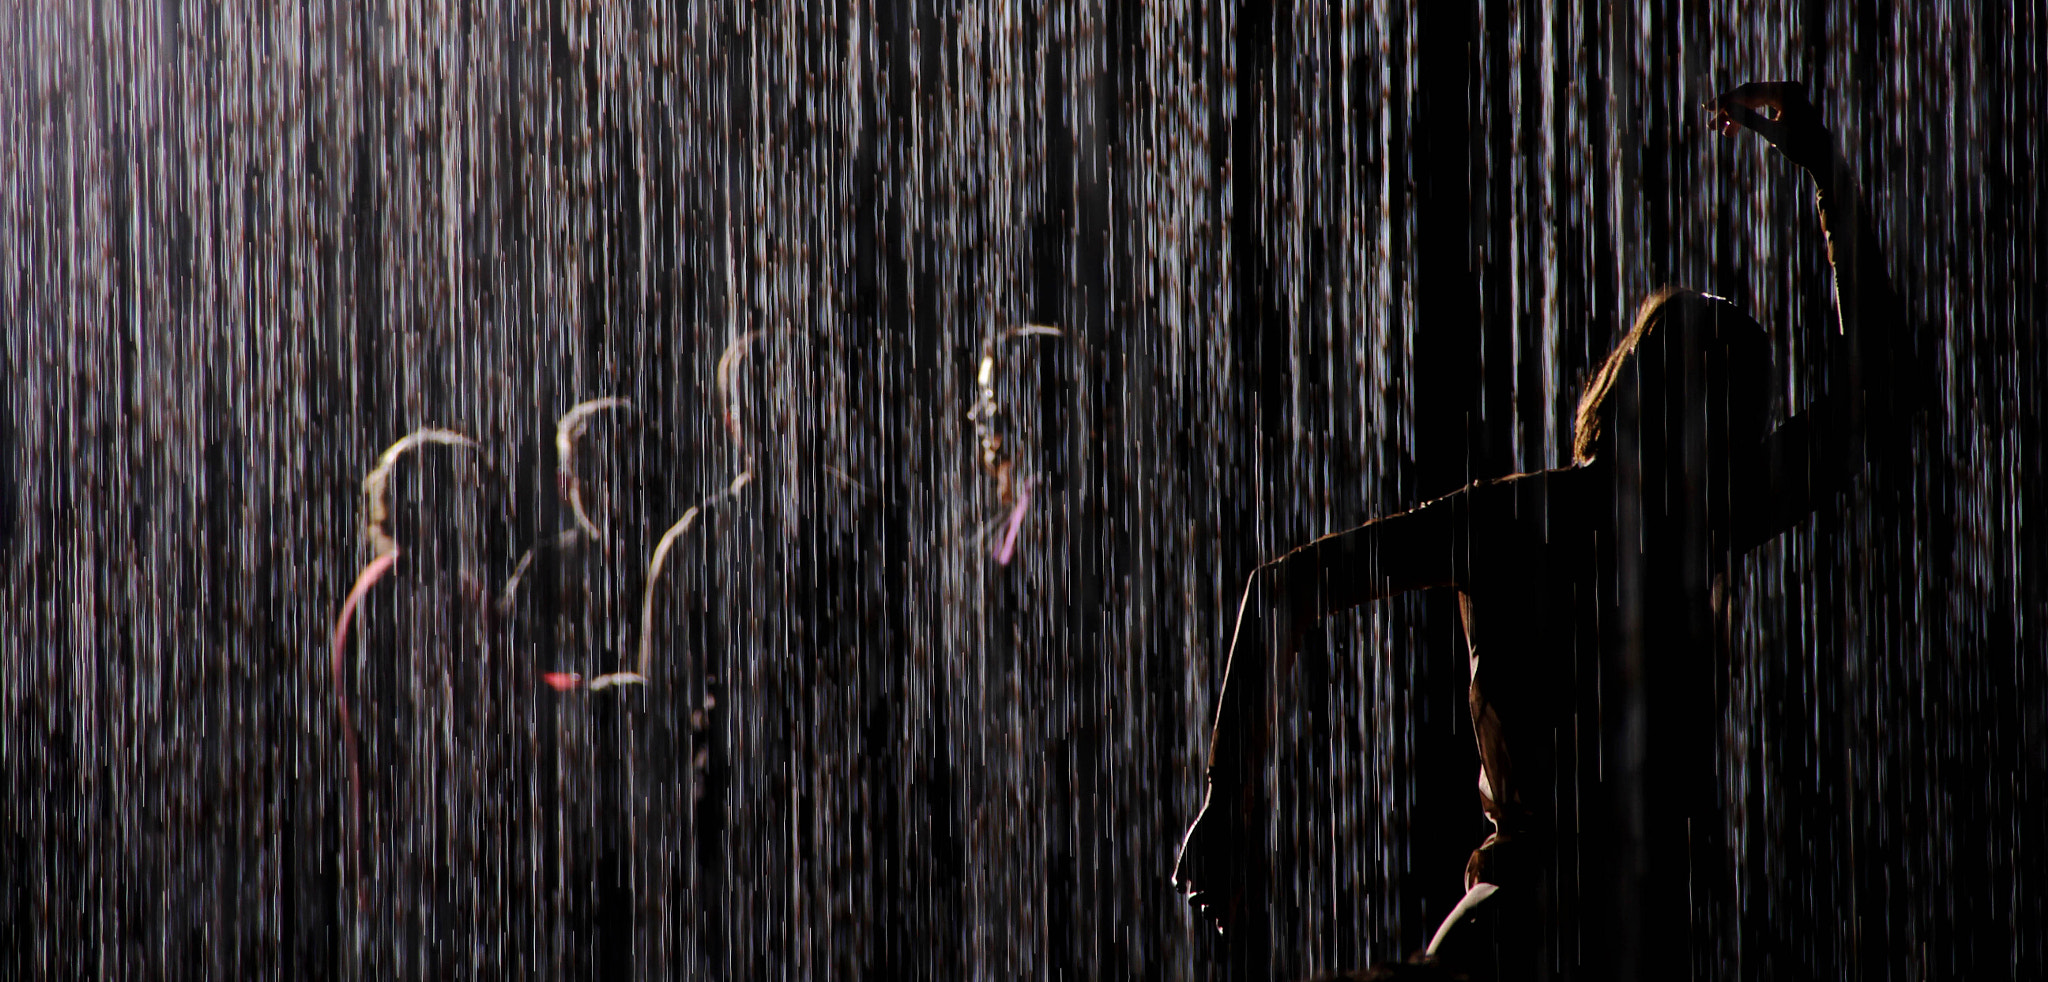 Photograph Dancing in the Rain Room by Elsa Correia on 500px